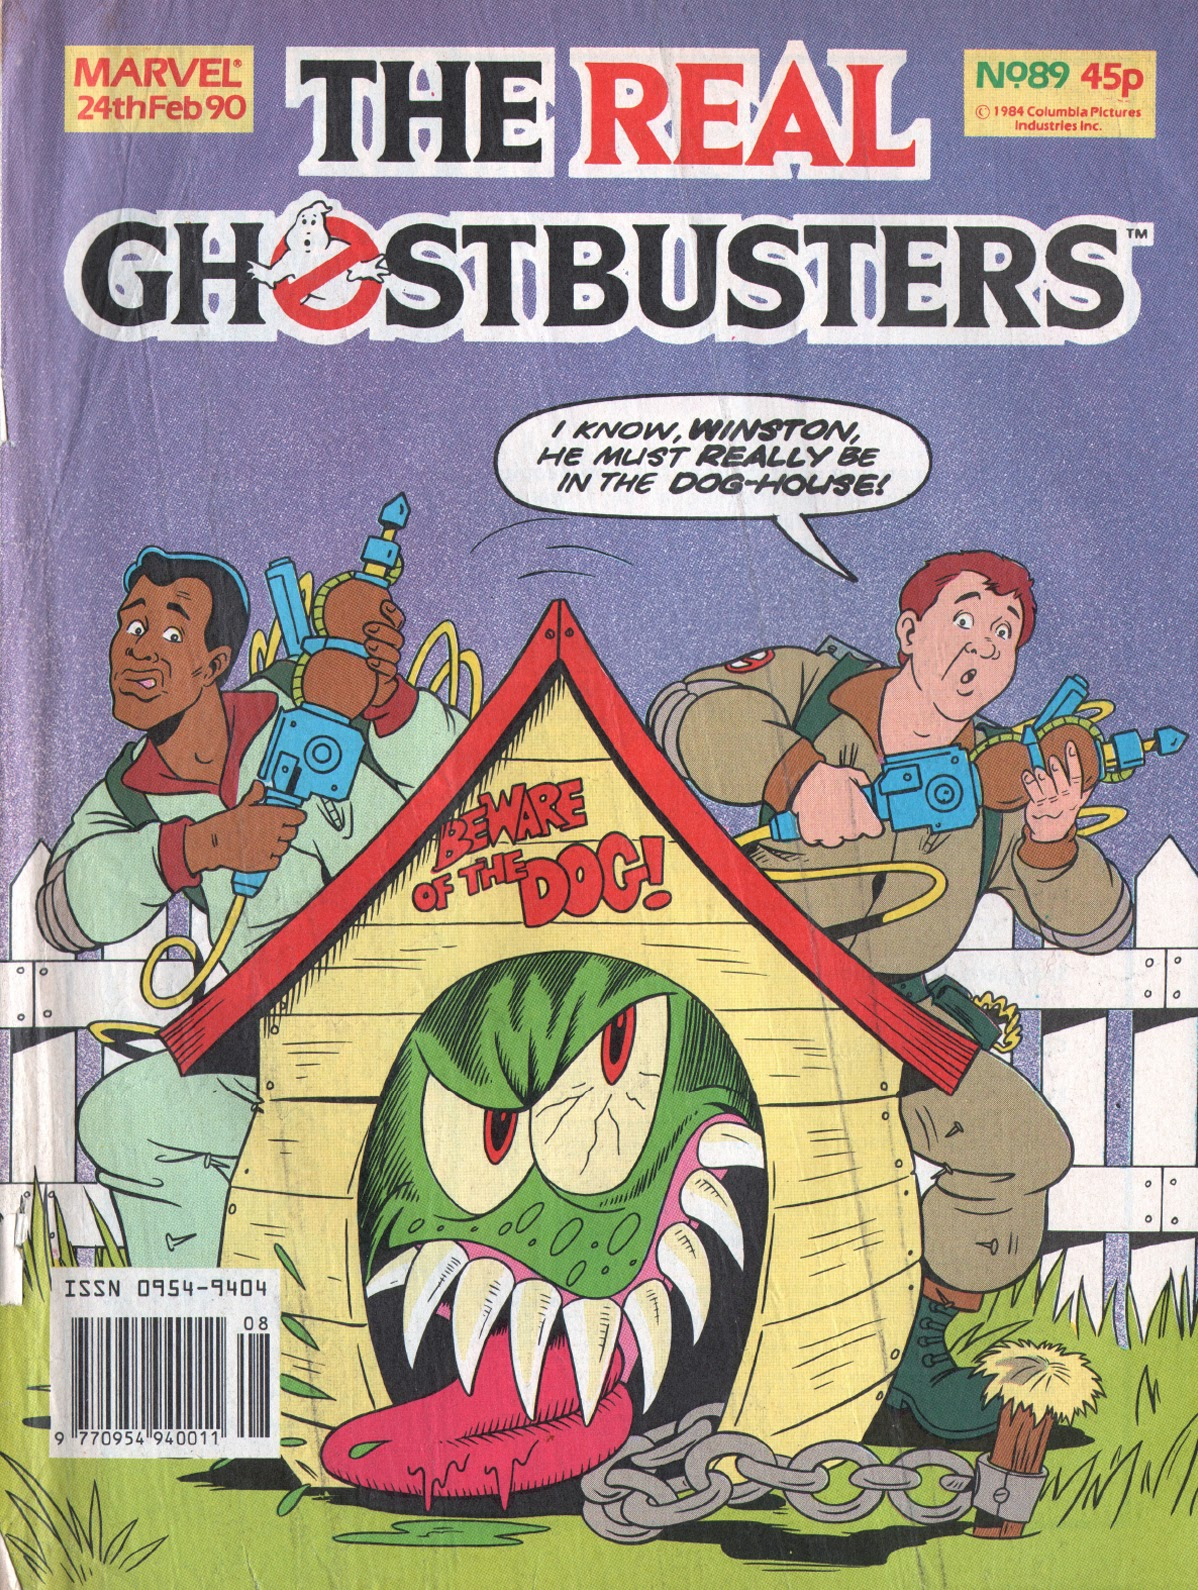 The Real Ghostbusters 89 Page 1